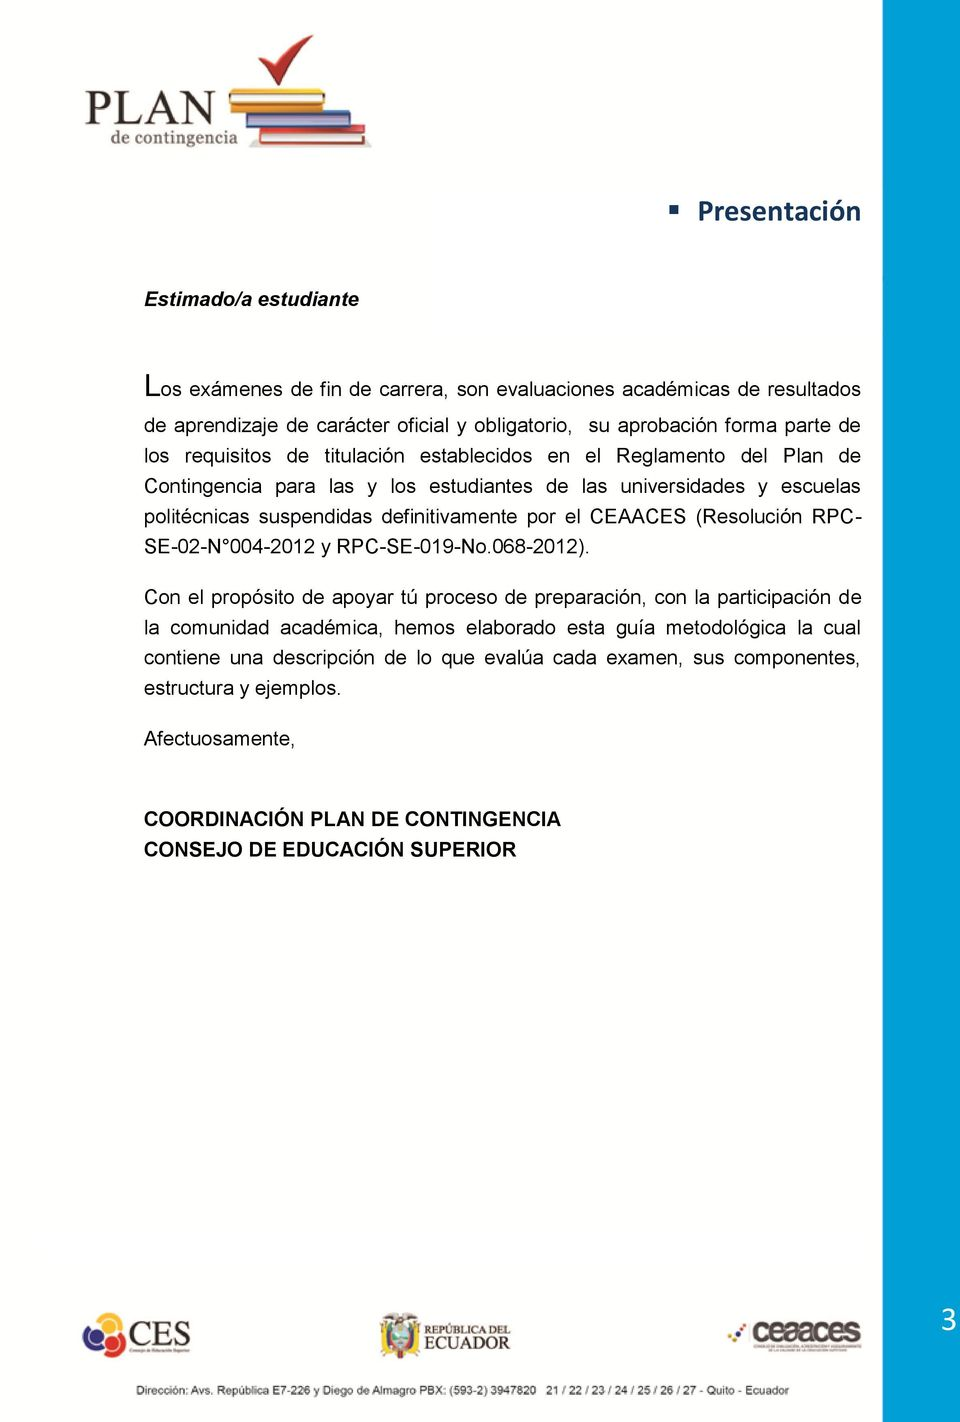 CEAACES (Resolución RPC- SE-02-N 004-2012 y RPC-SE-019-No.068-2012).